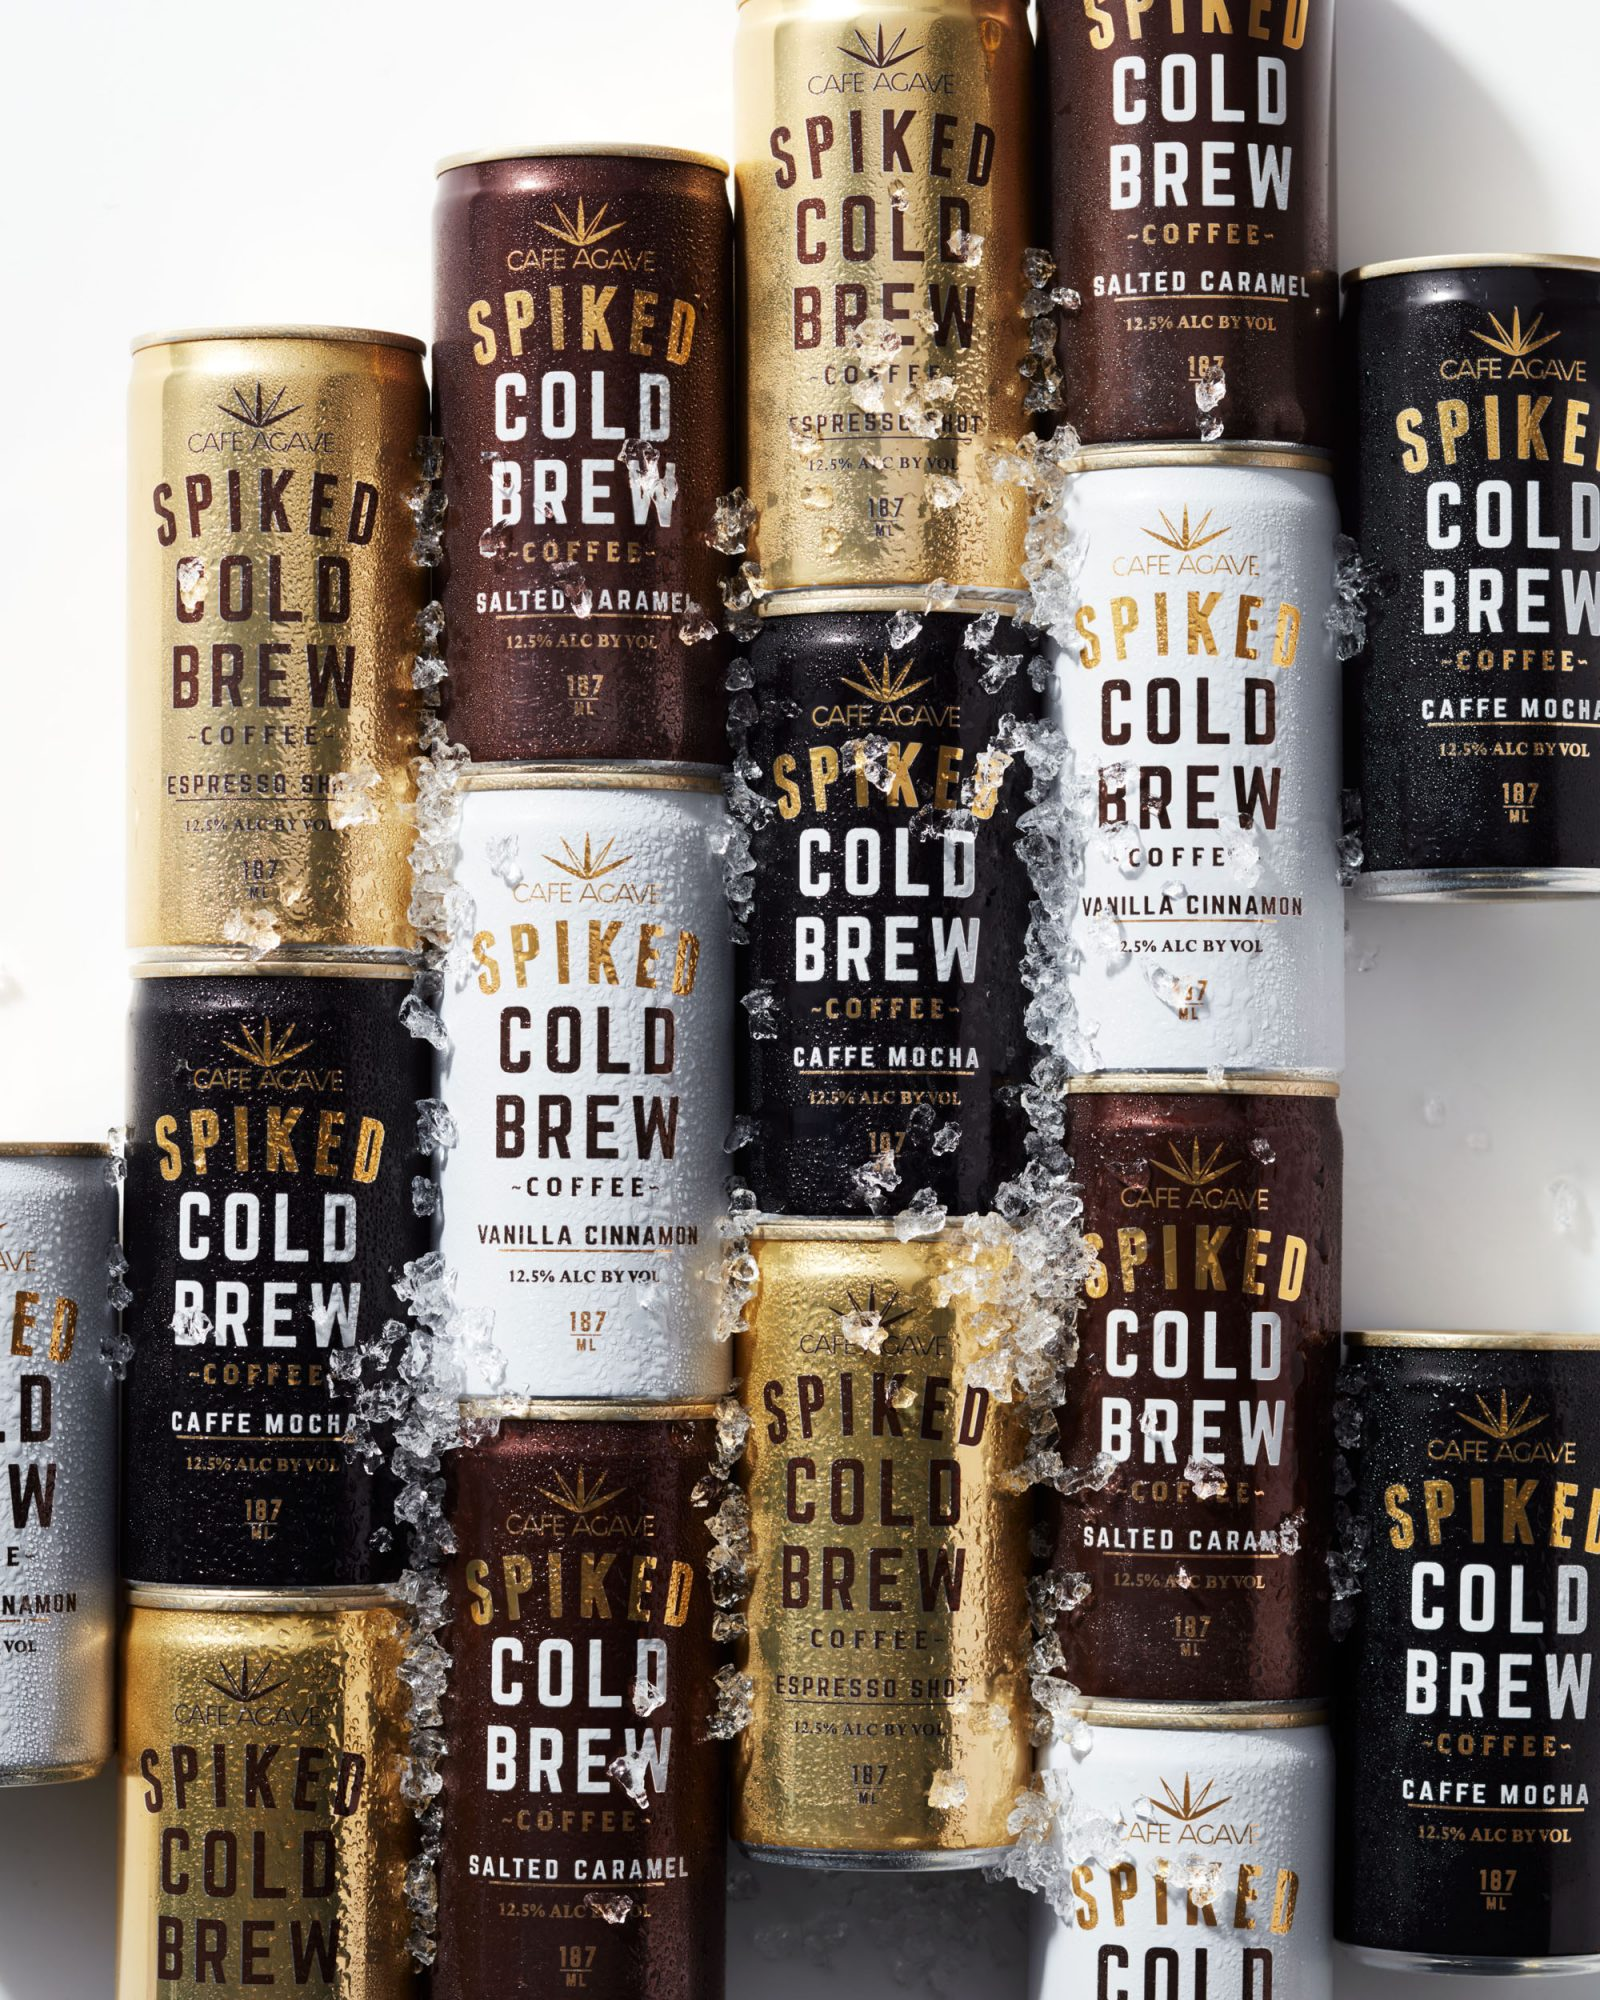 canned spiked cold brew coffee